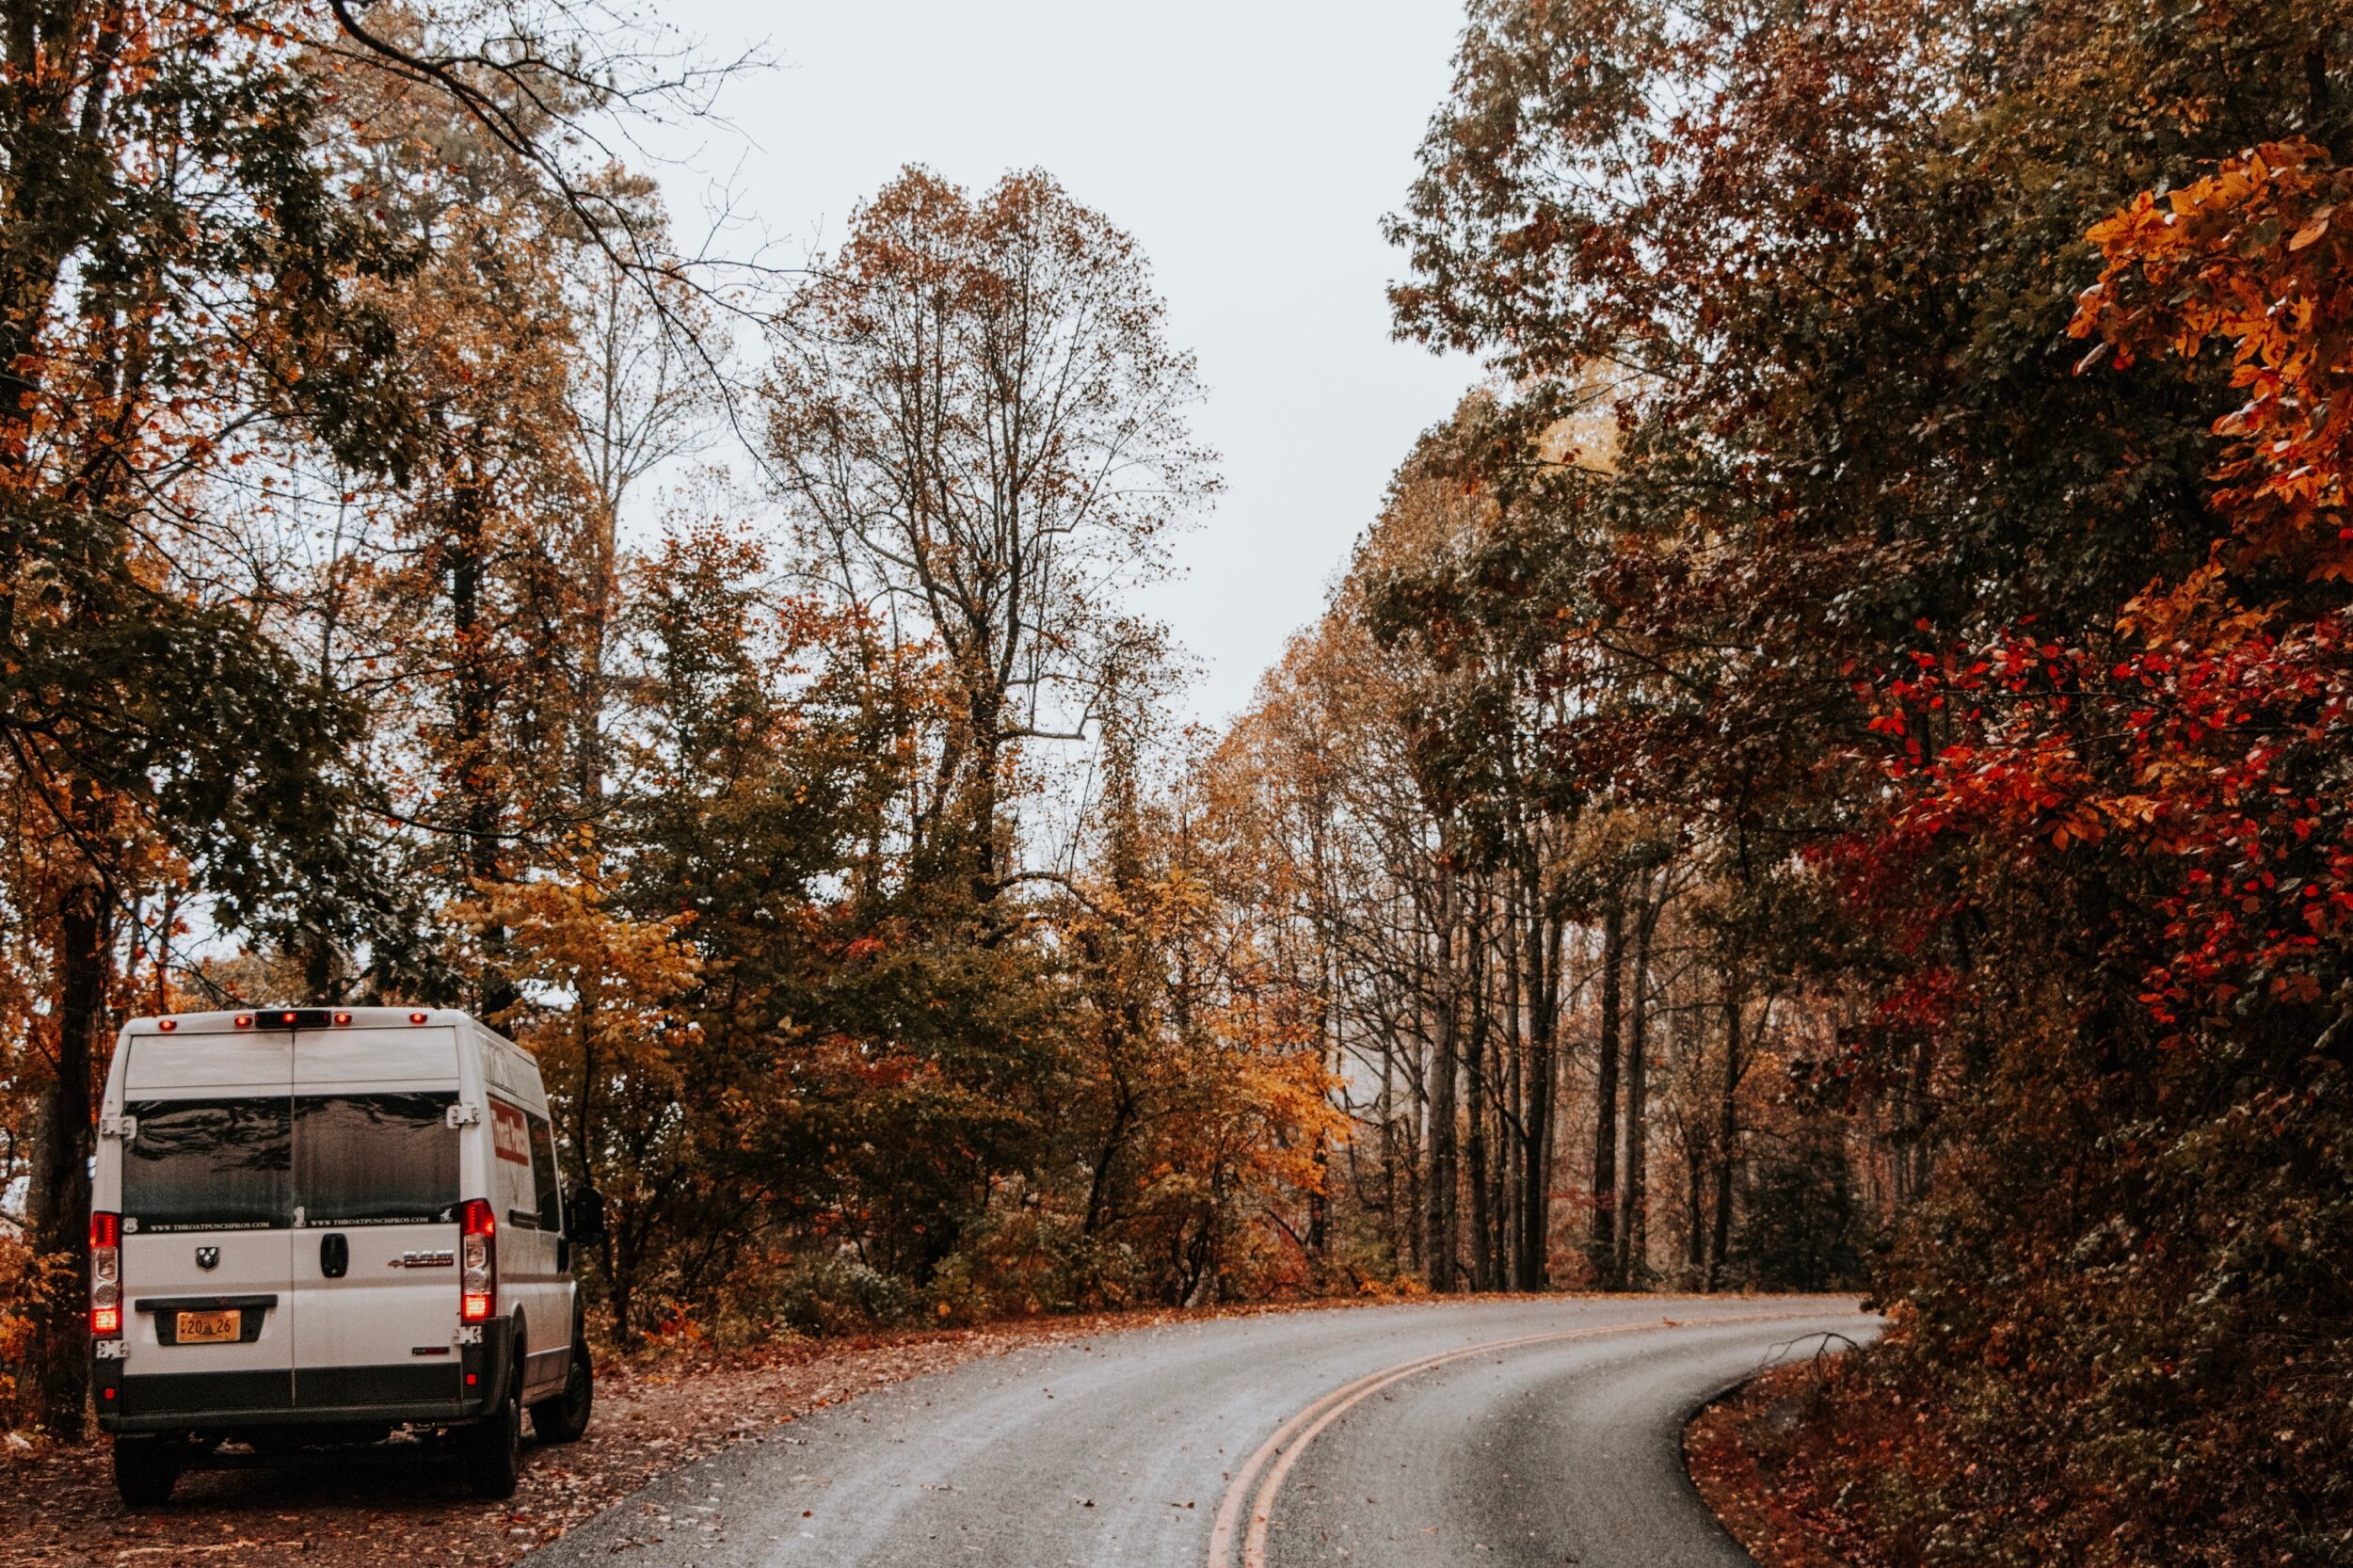 Photographer and vanlife mode engaged